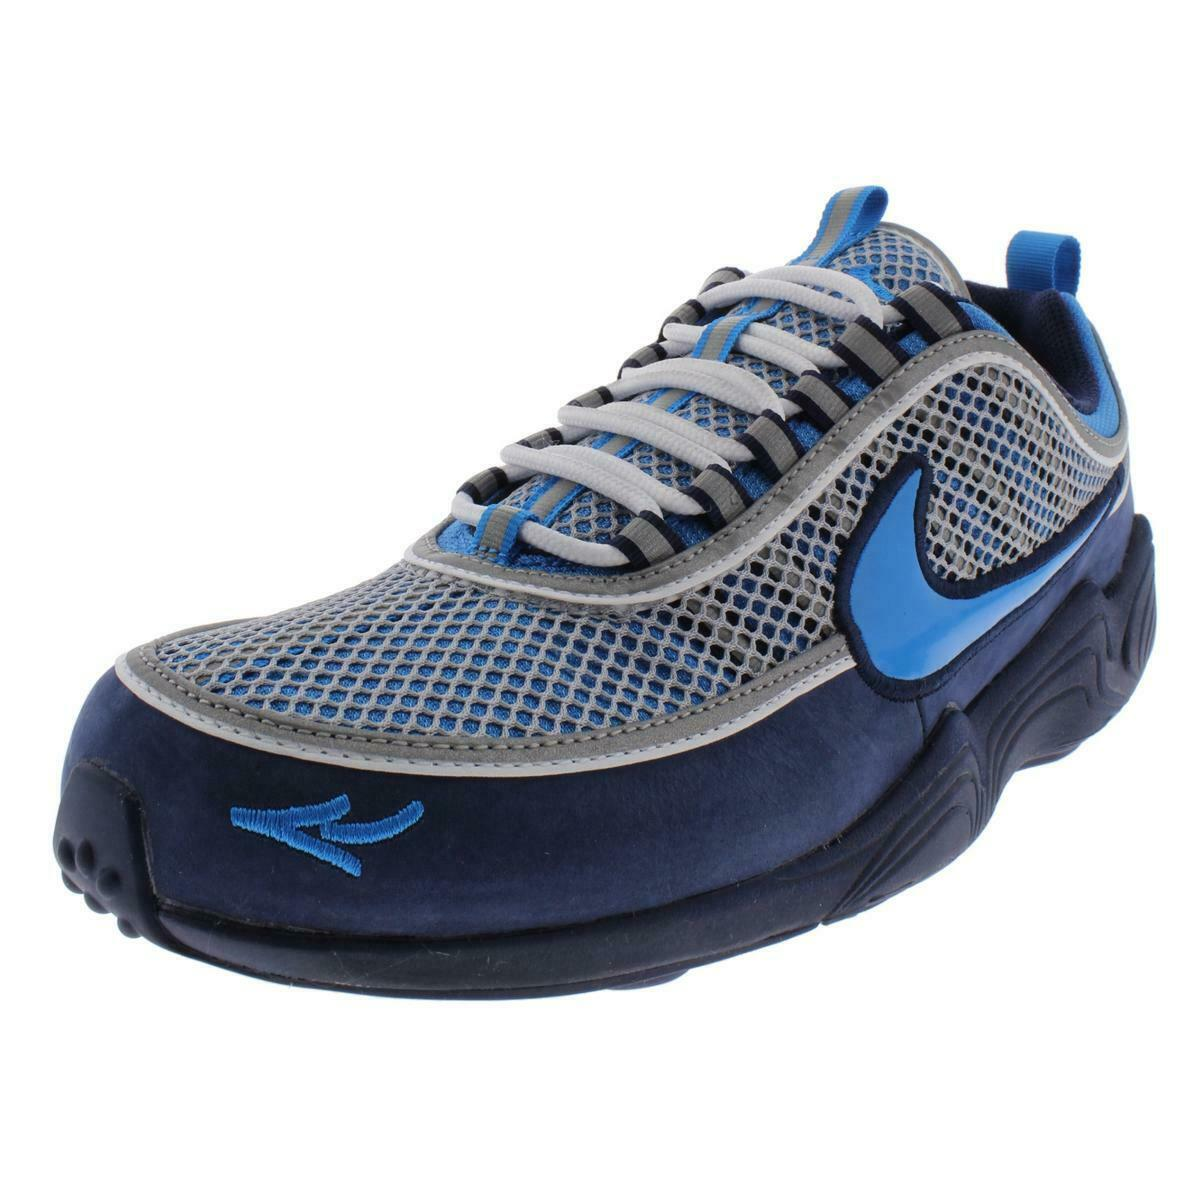 Nike Mens Air Zoom Spiridon 16  STASH Running Athletic scarpe scarpe da ginnastica BHFO 4078